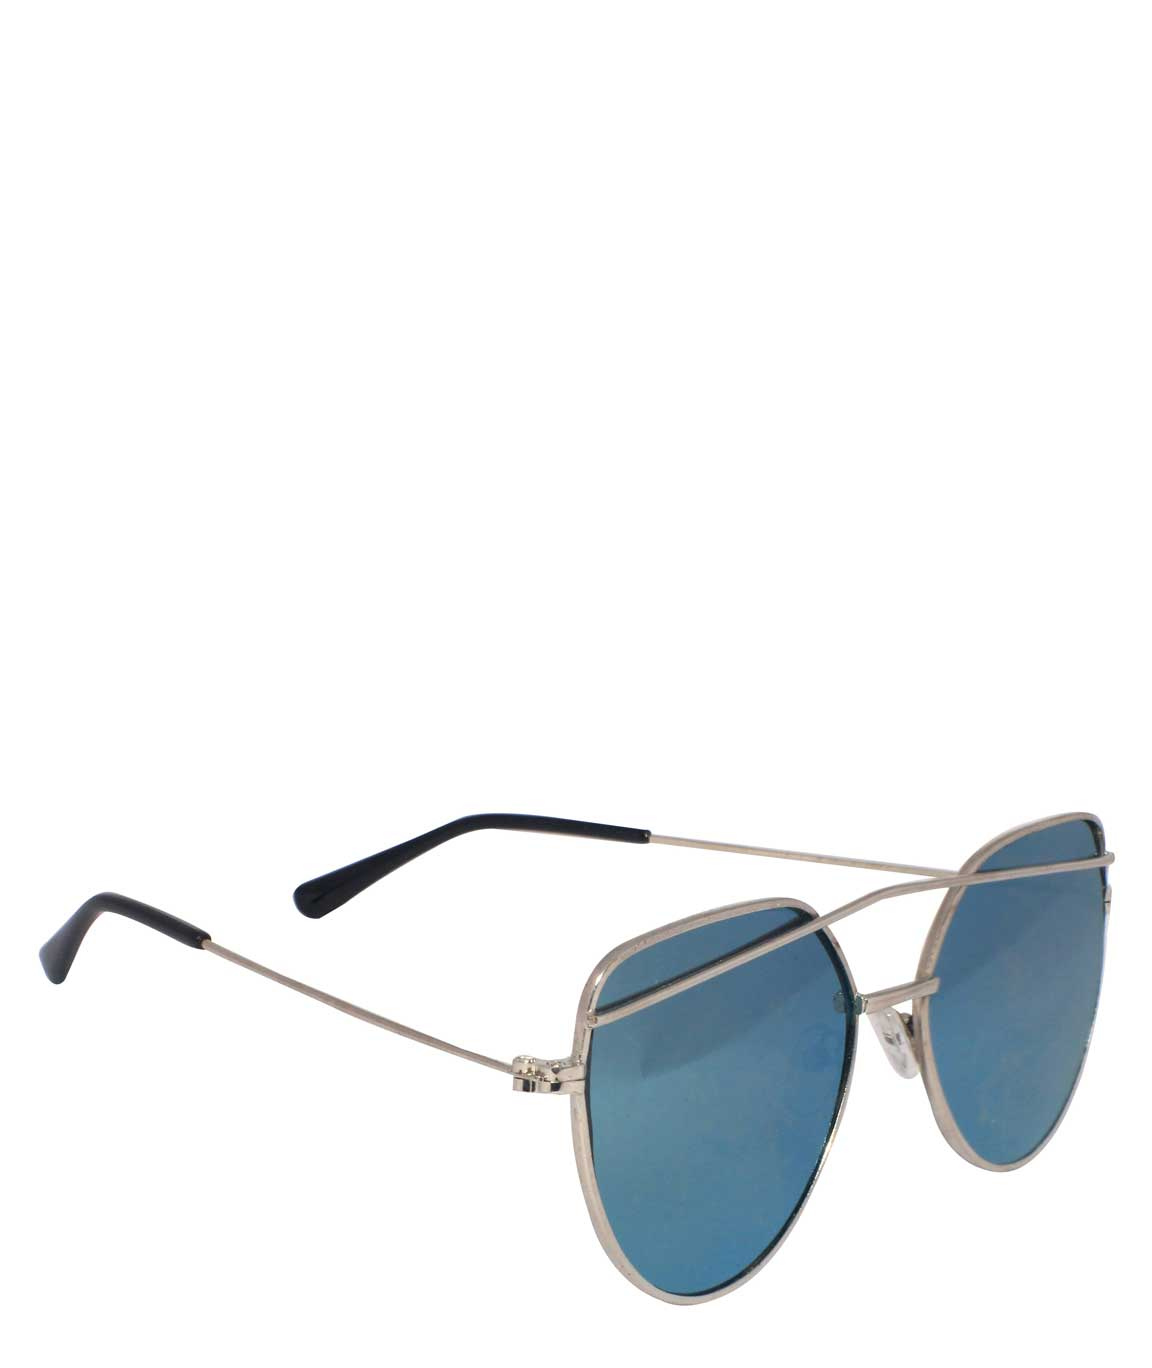 MODERN BLUE AVIATOR X